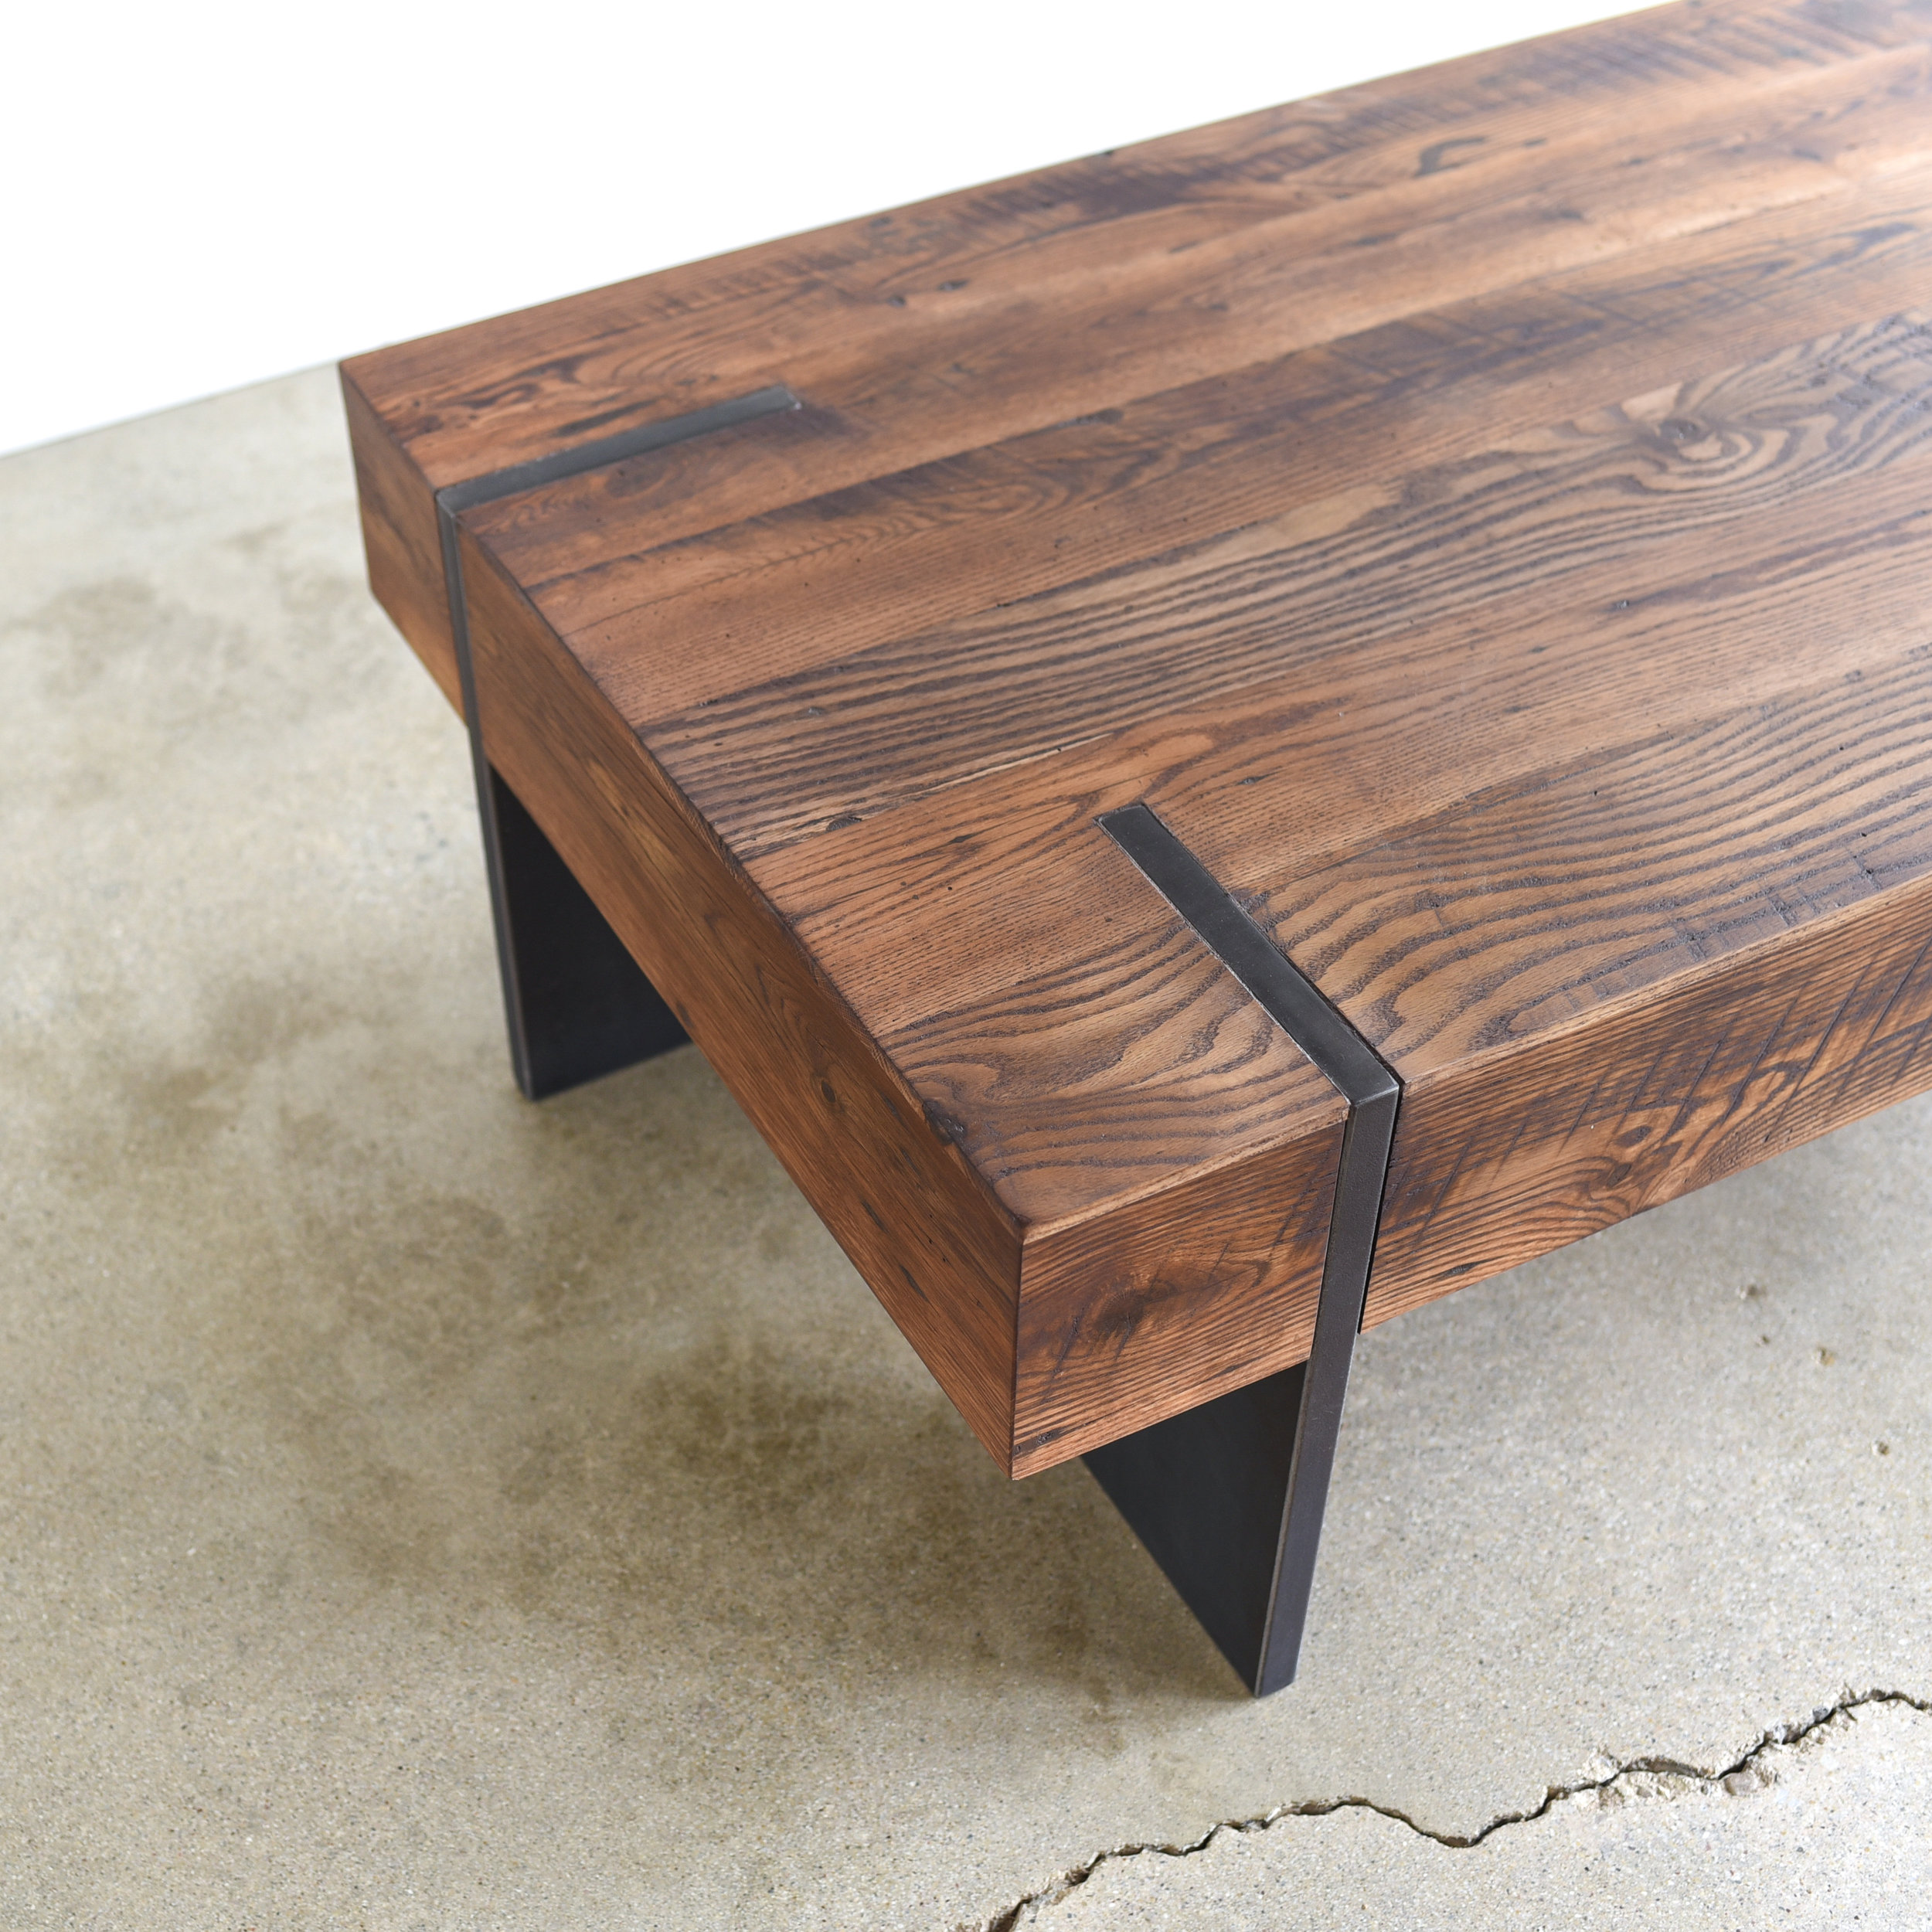 Large Modern Reclaimed Wood Coffee Table What We Make